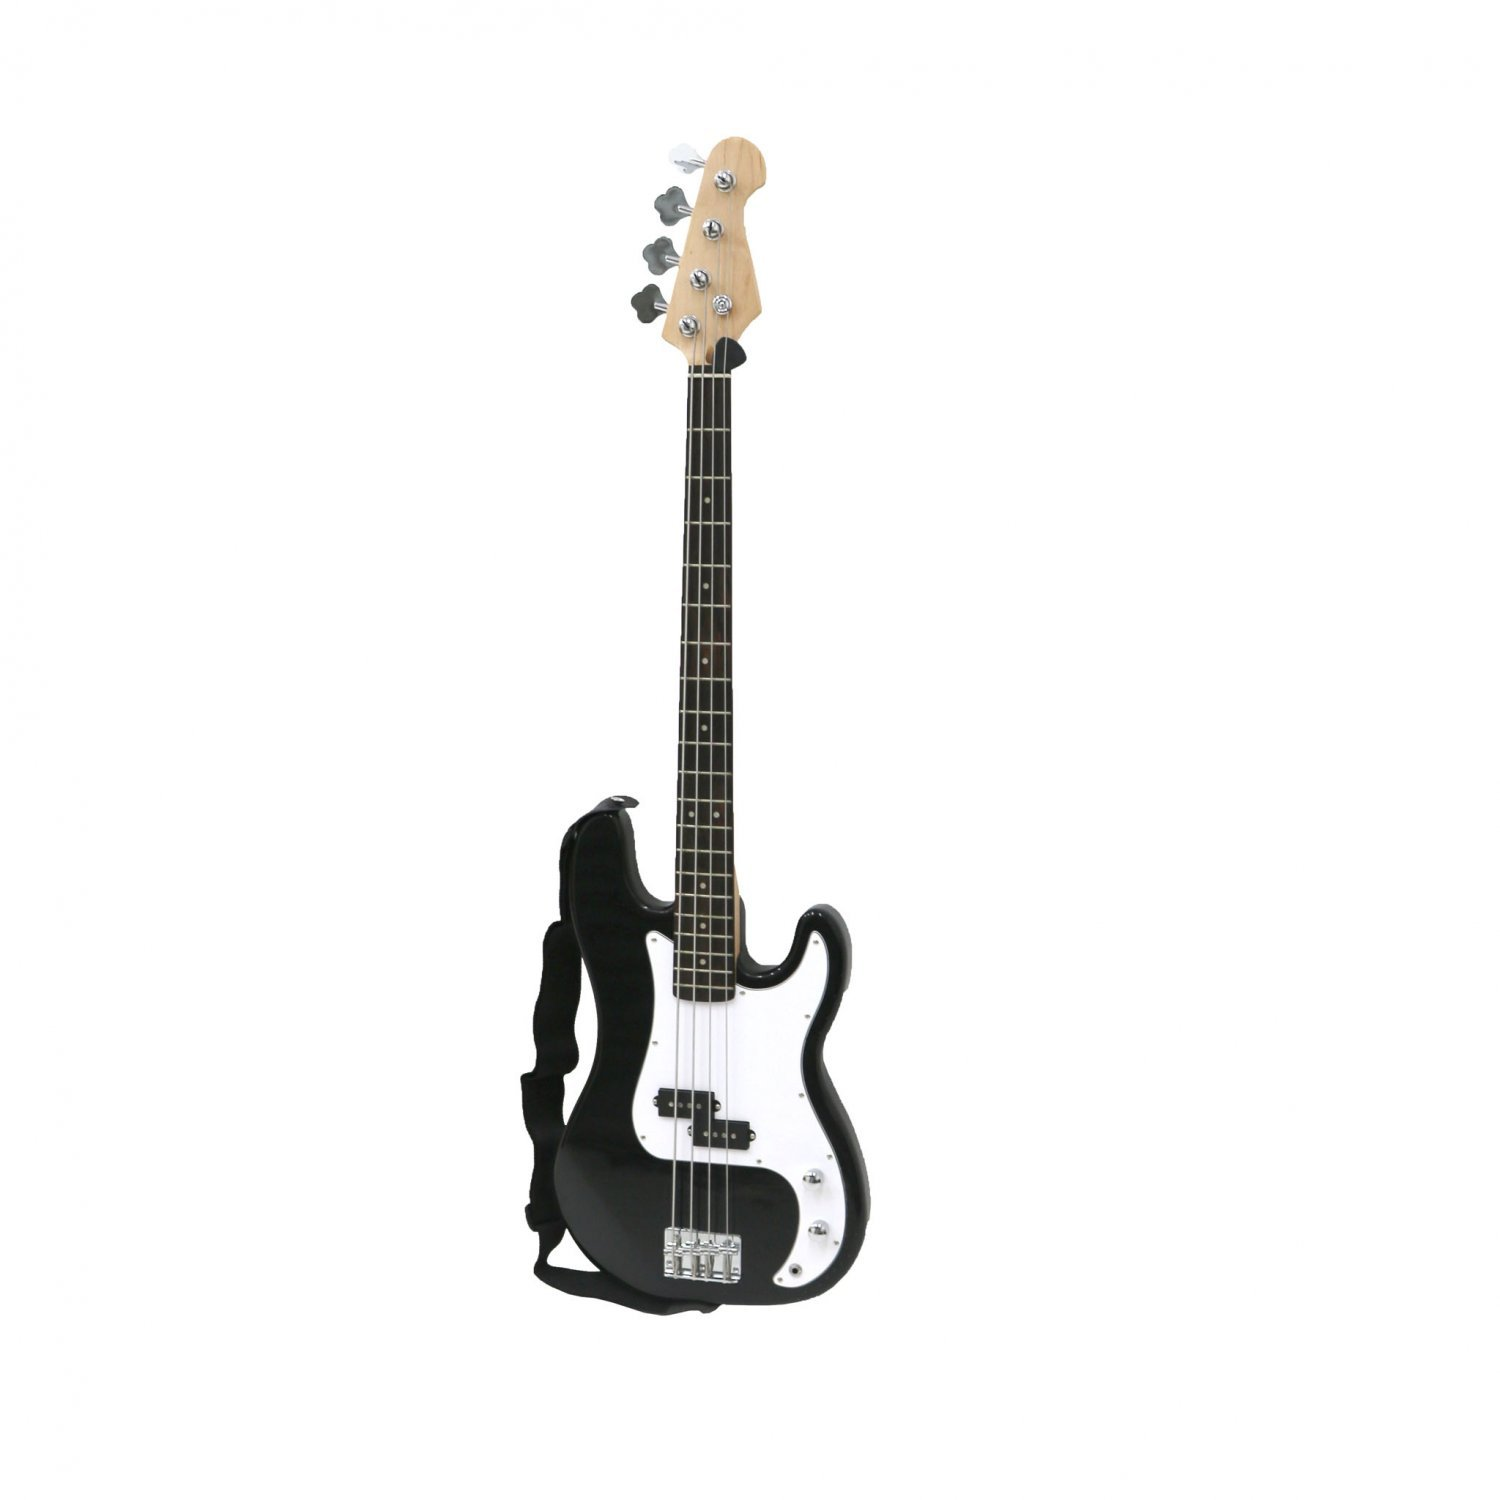 pb precision style black 4 string electric bass guitar oypla stocking the very best. Black Bedroom Furniture Sets. Home Design Ideas